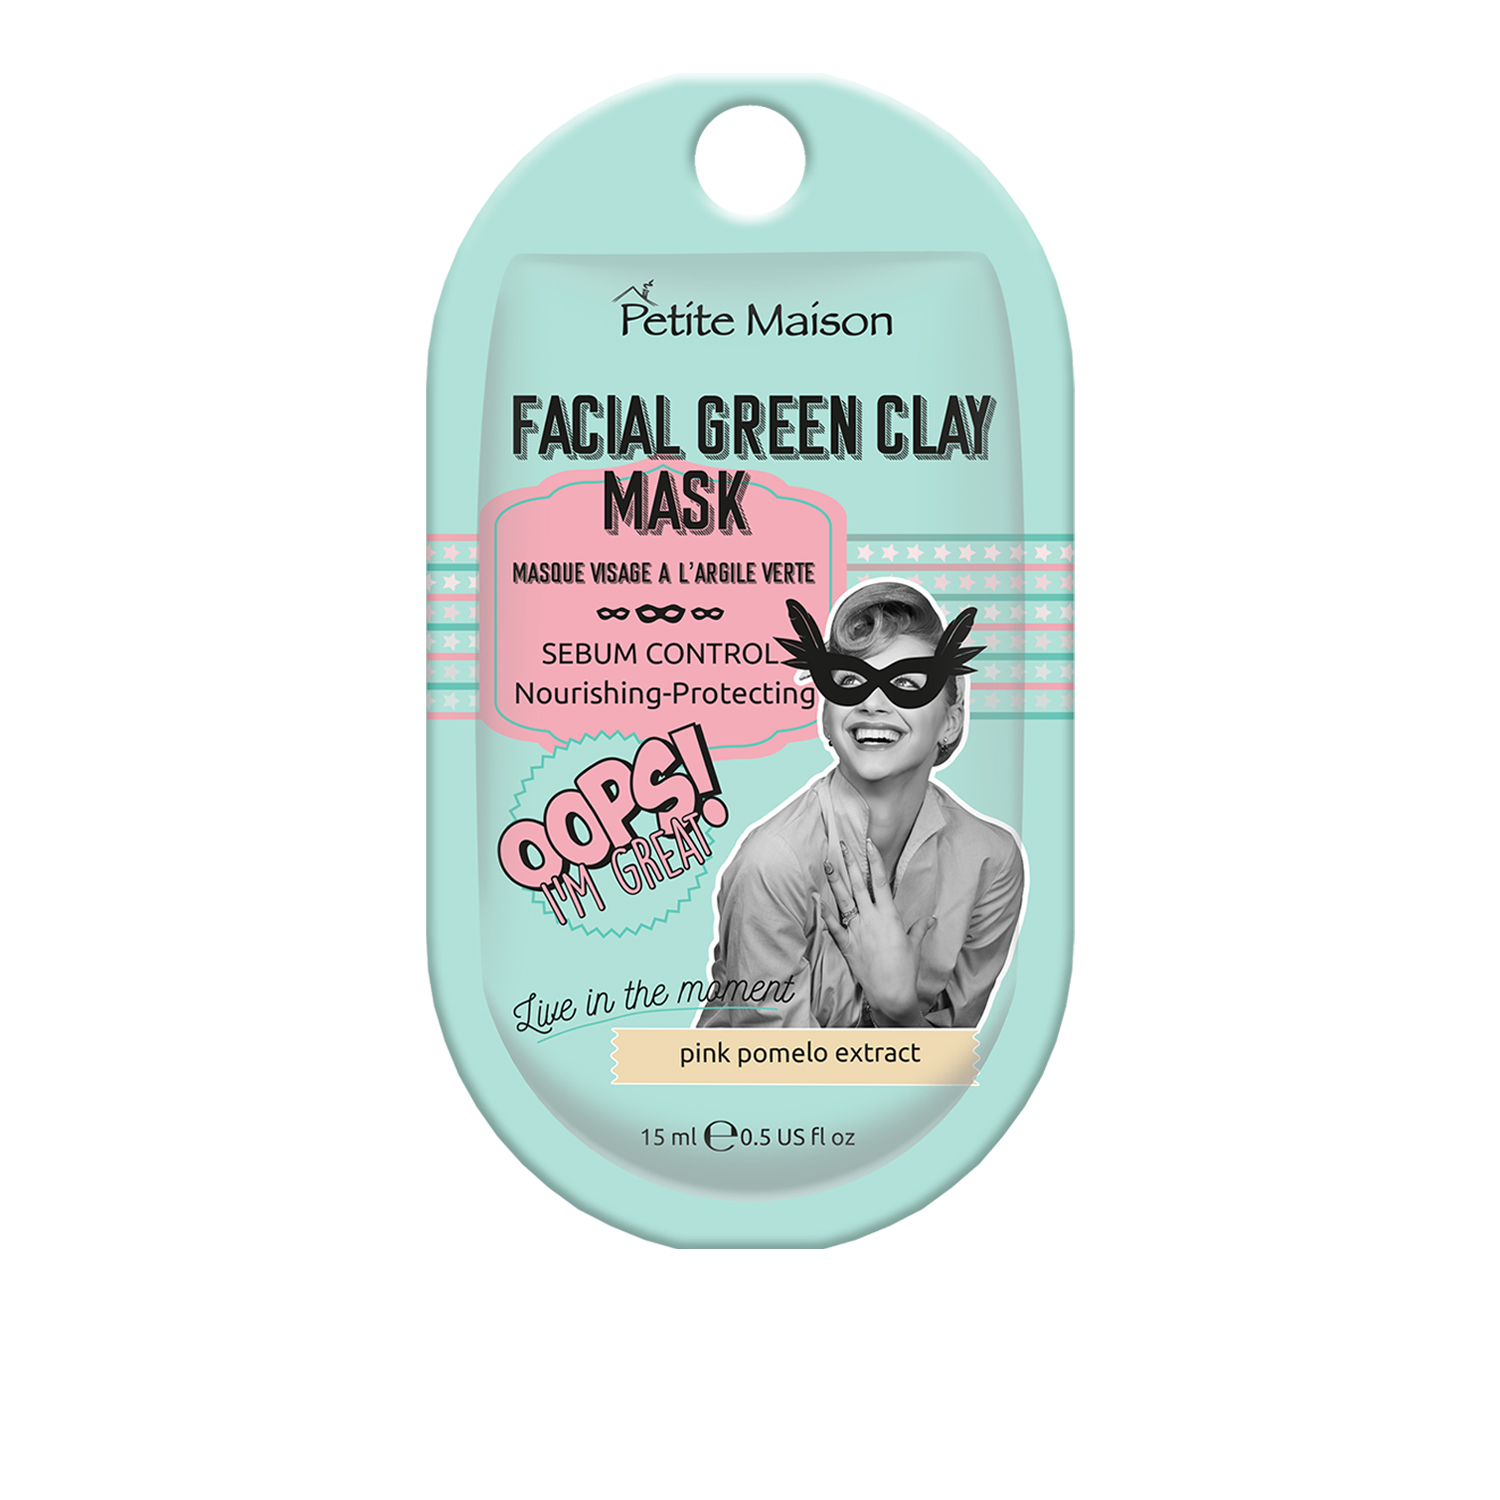 Petite Maison Facial Green Clay Mask Mini